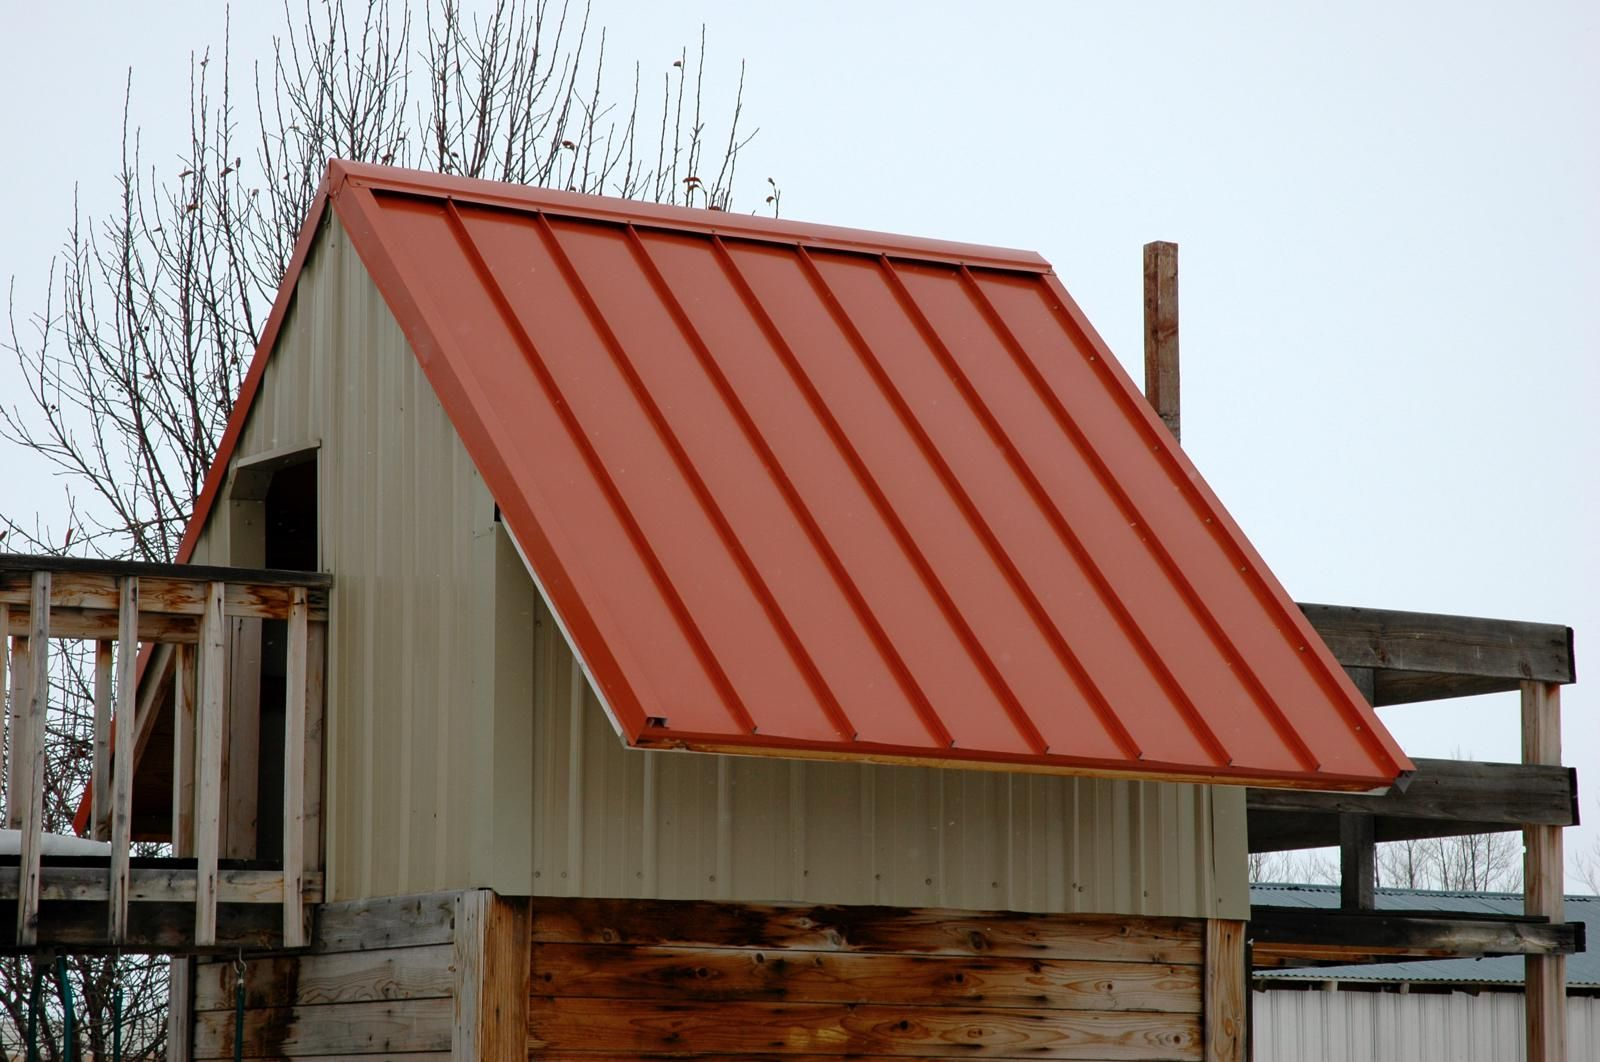 Terra Cotta Rigby Idaho Armorx Series Rapid Snap Ns100 Metal Roofing Play House Metal Roof Gallery Frame Outdoor Decor